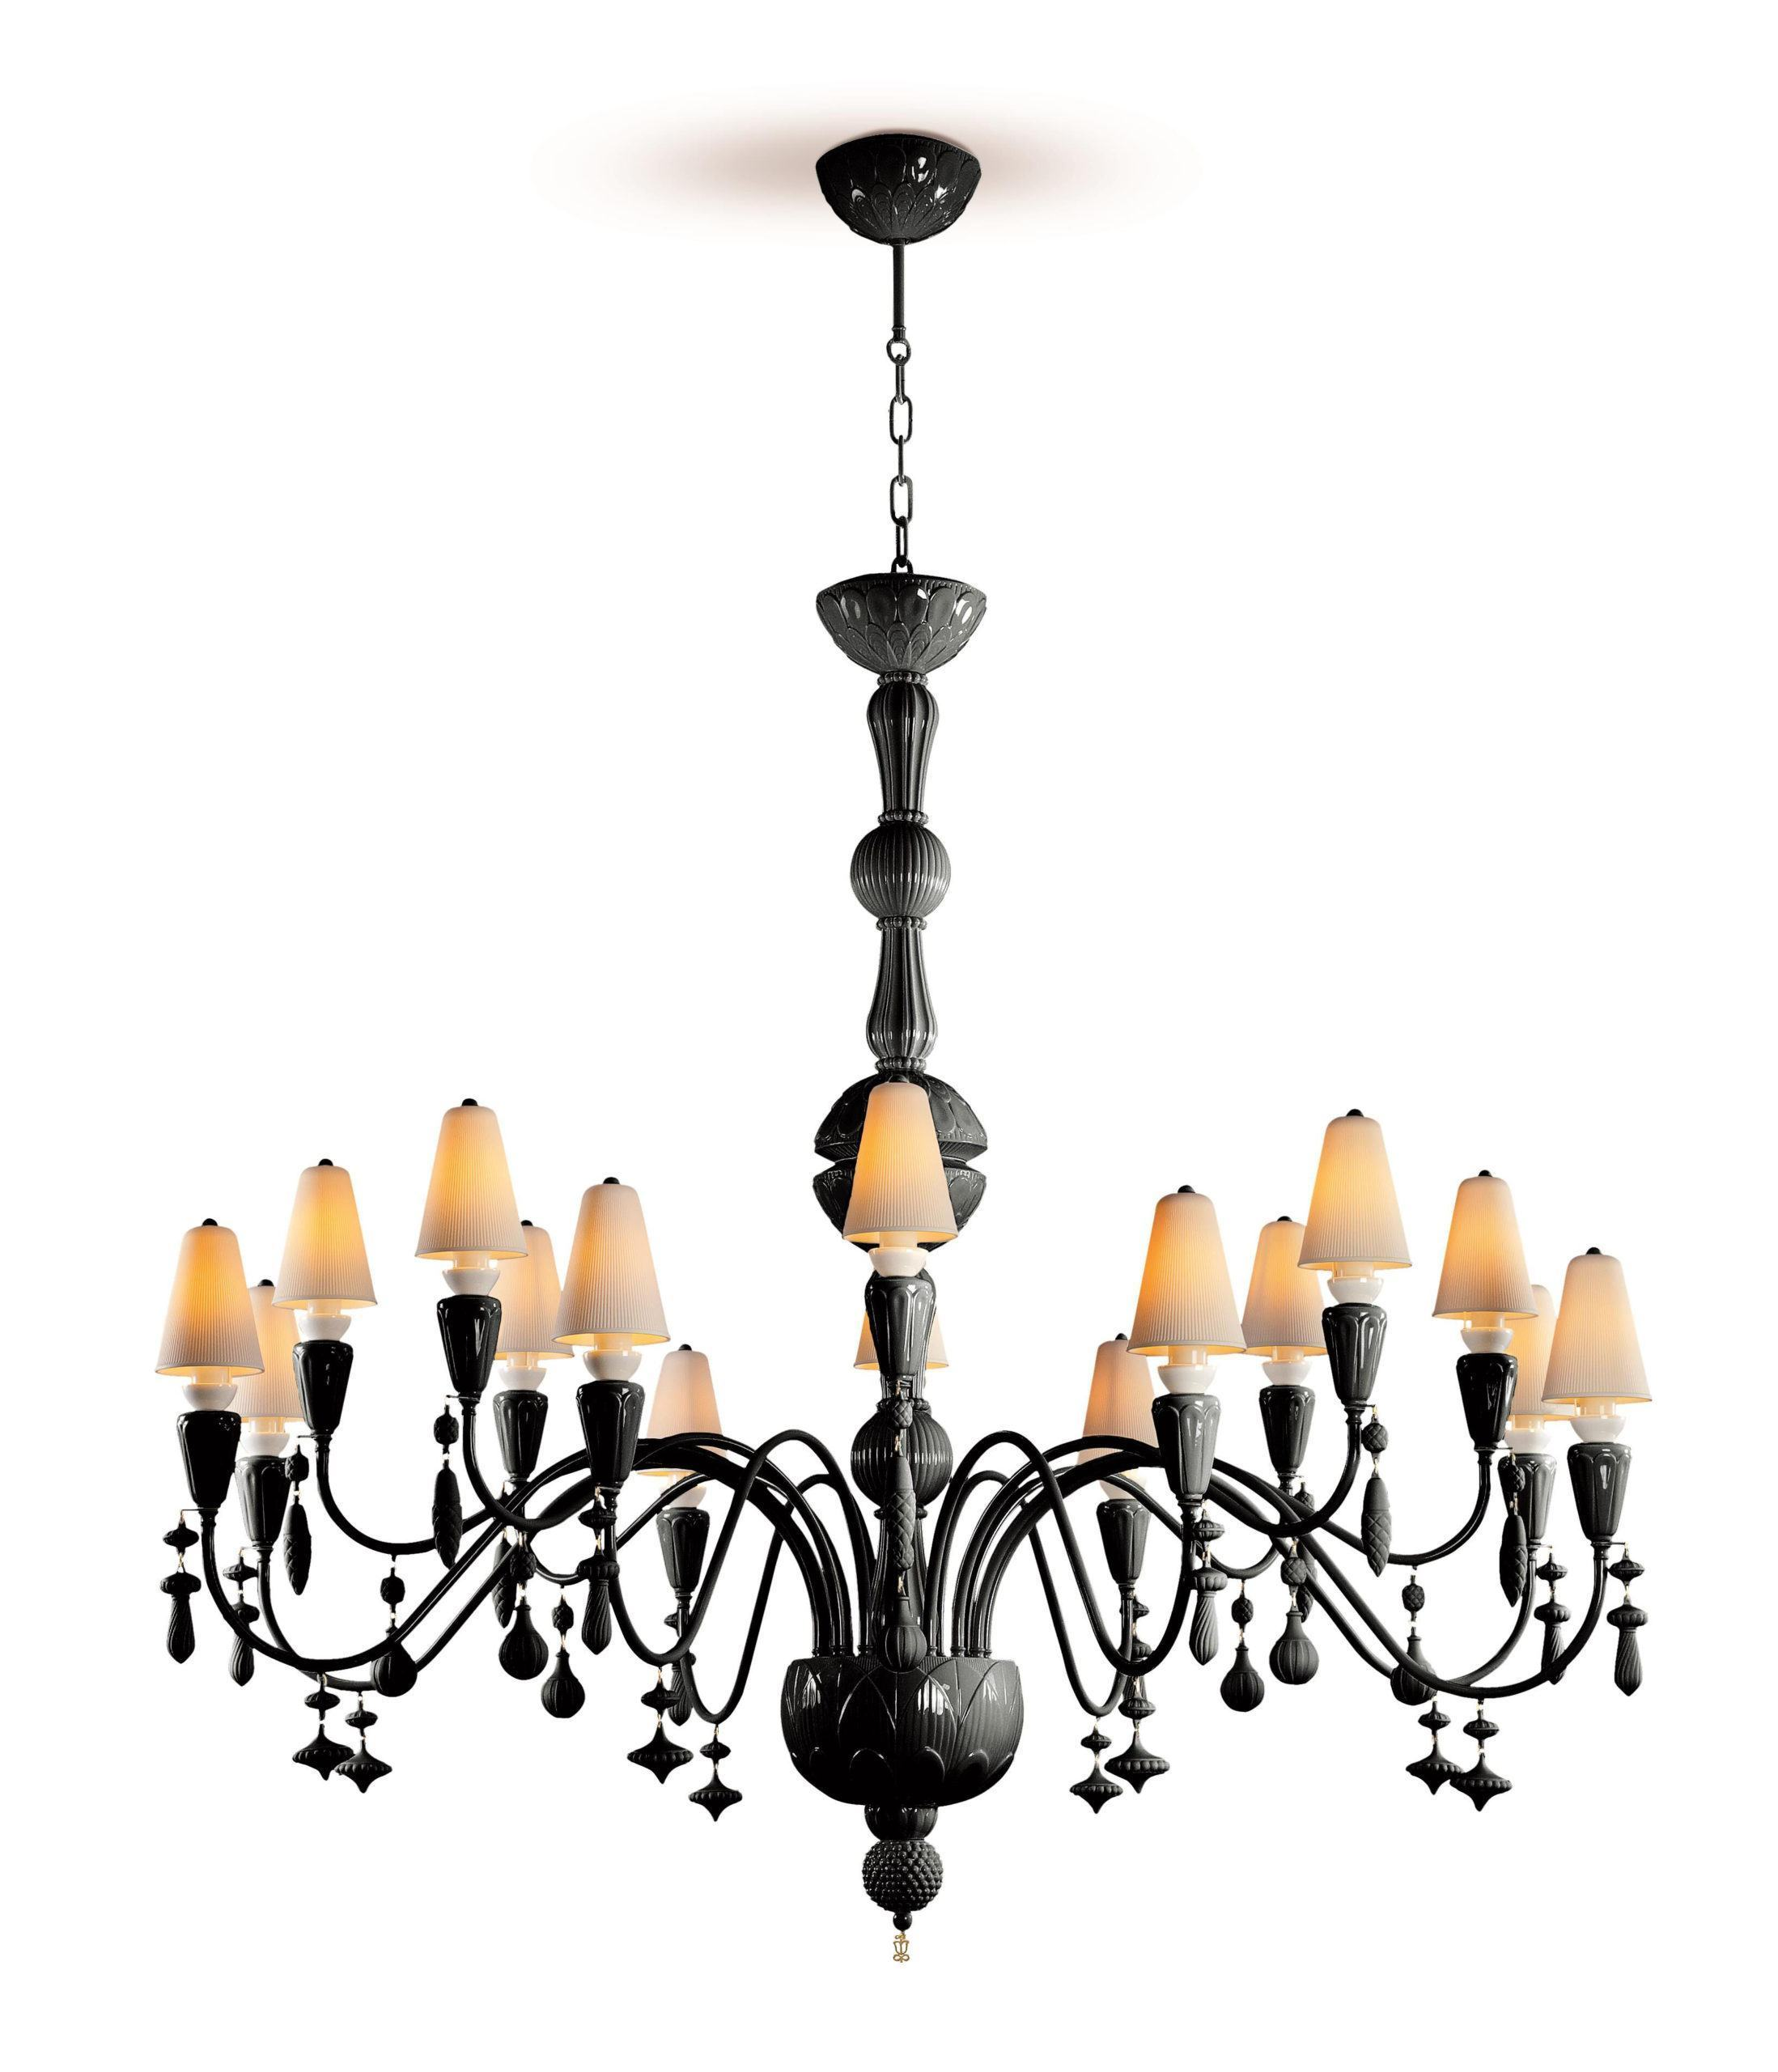 Люстра Ivy and Seed 16 Lights. Large Flat Model. Absolute Black